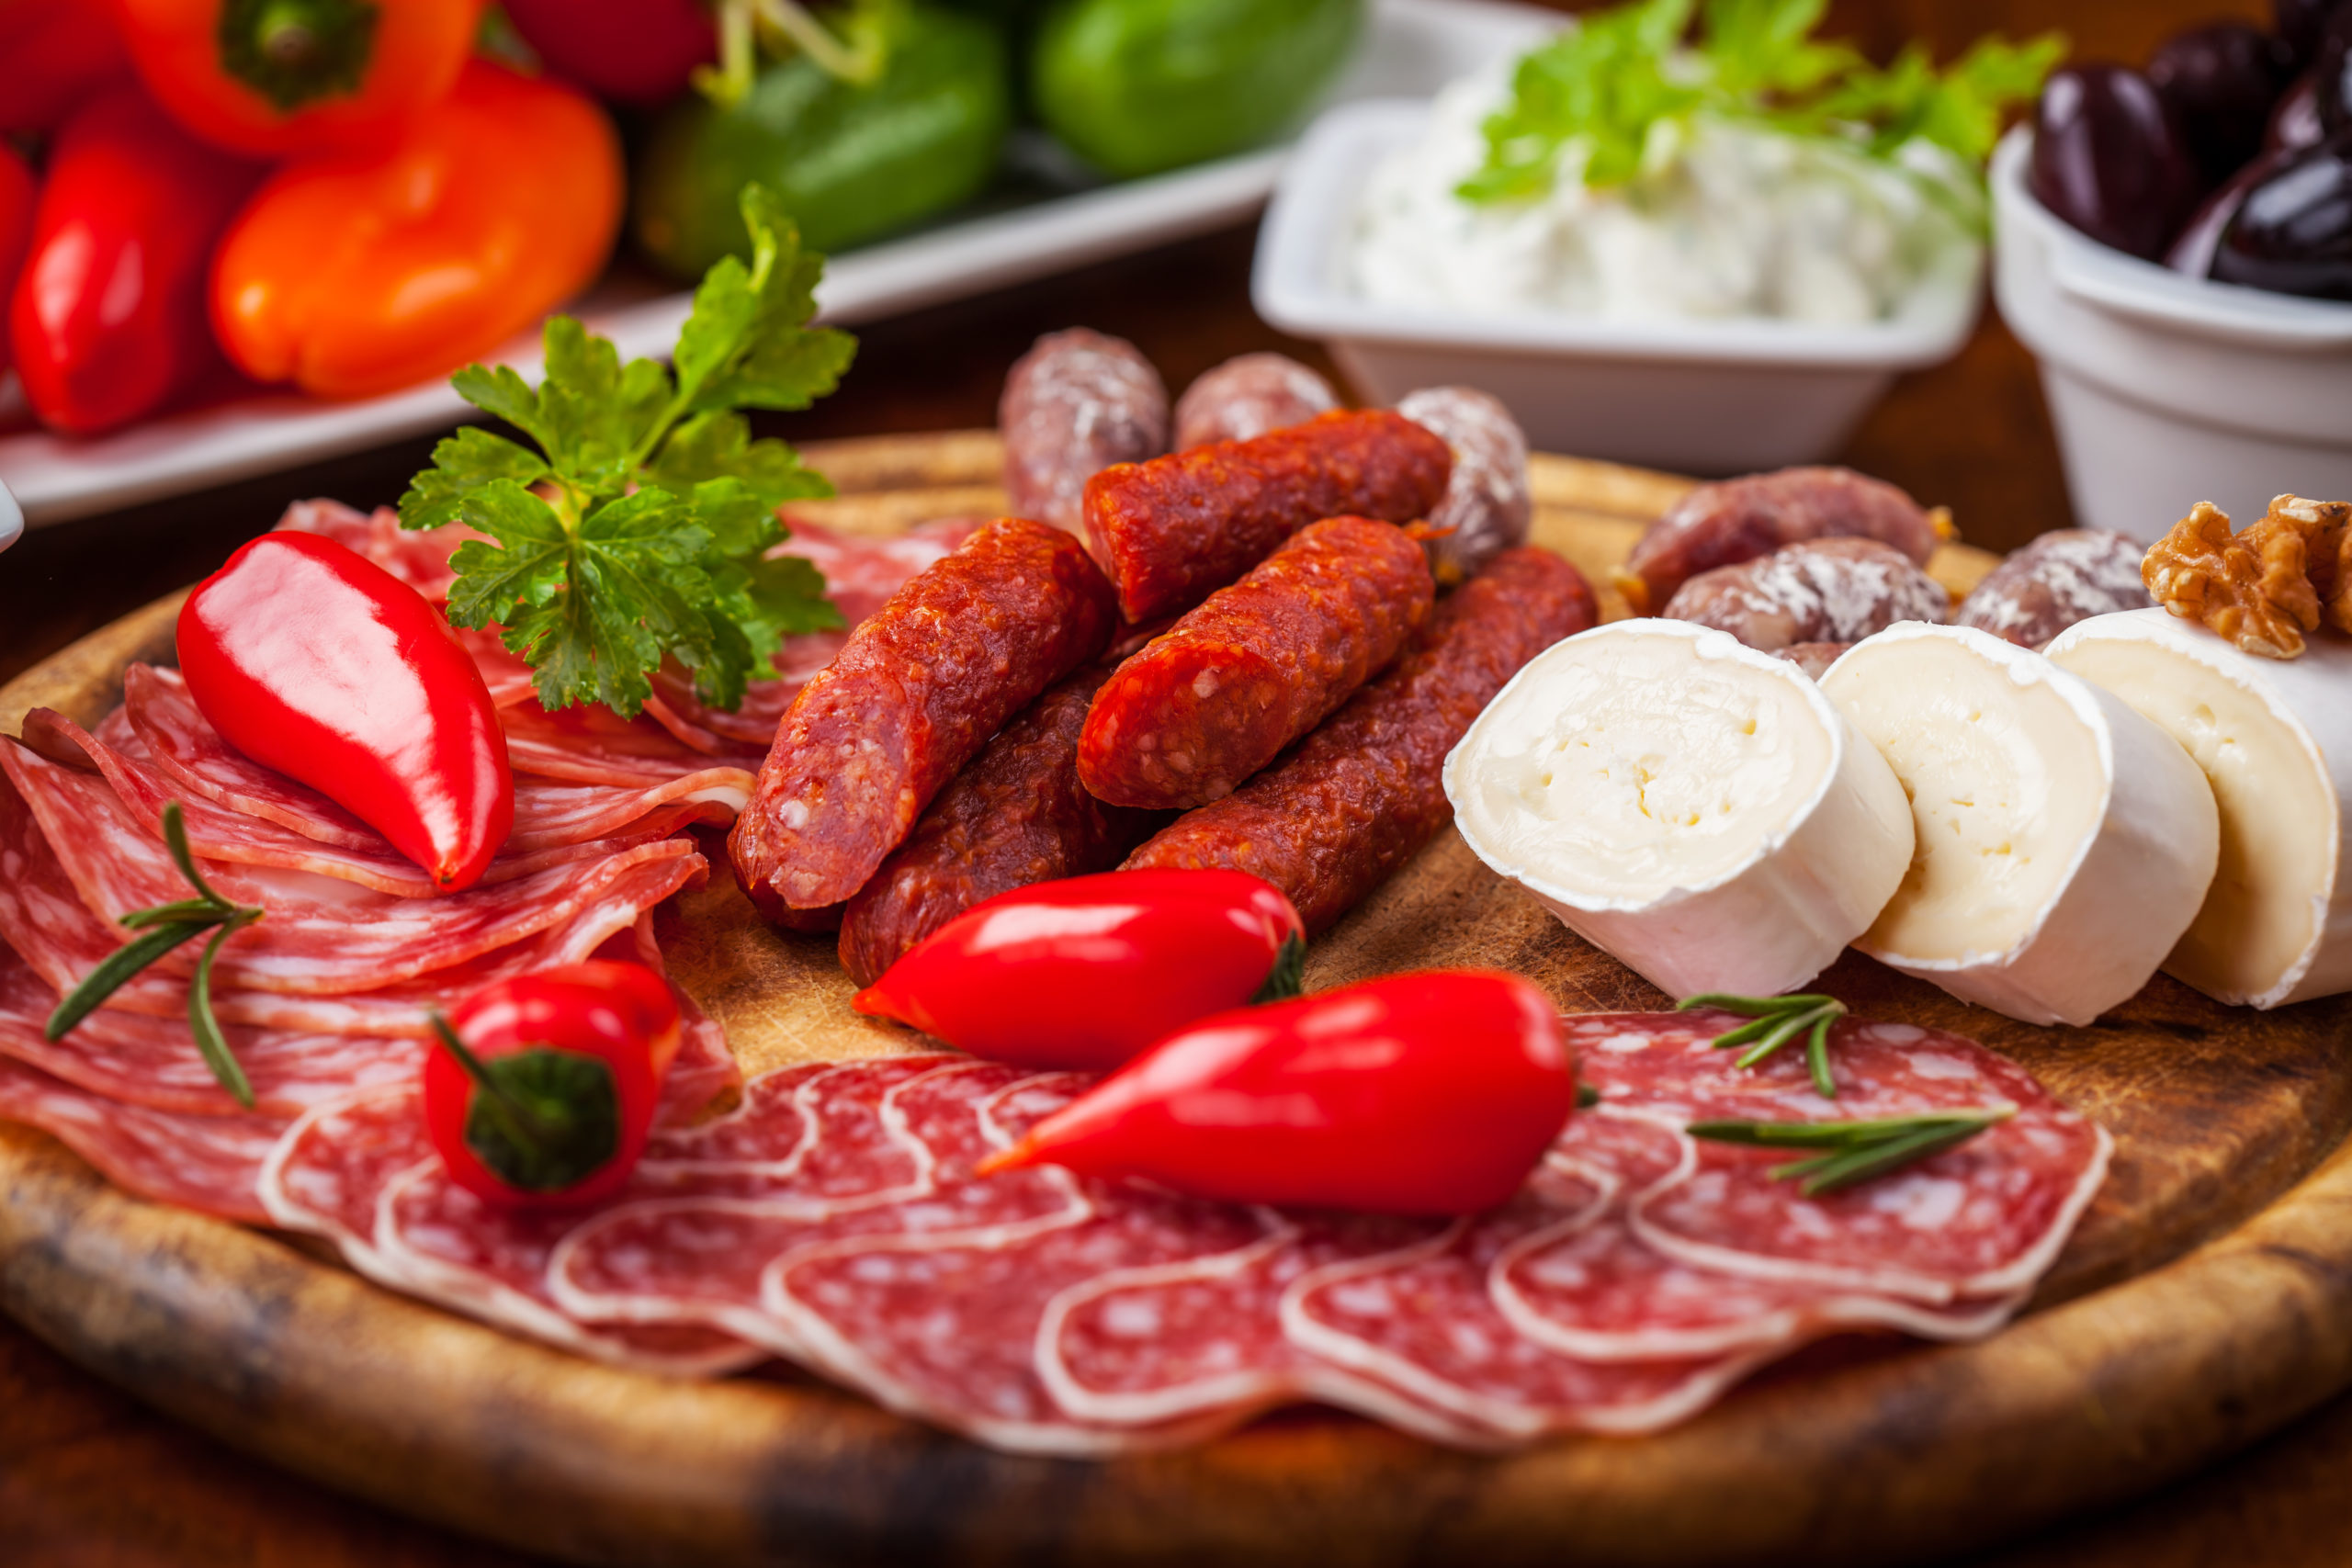 Meat and cheese products